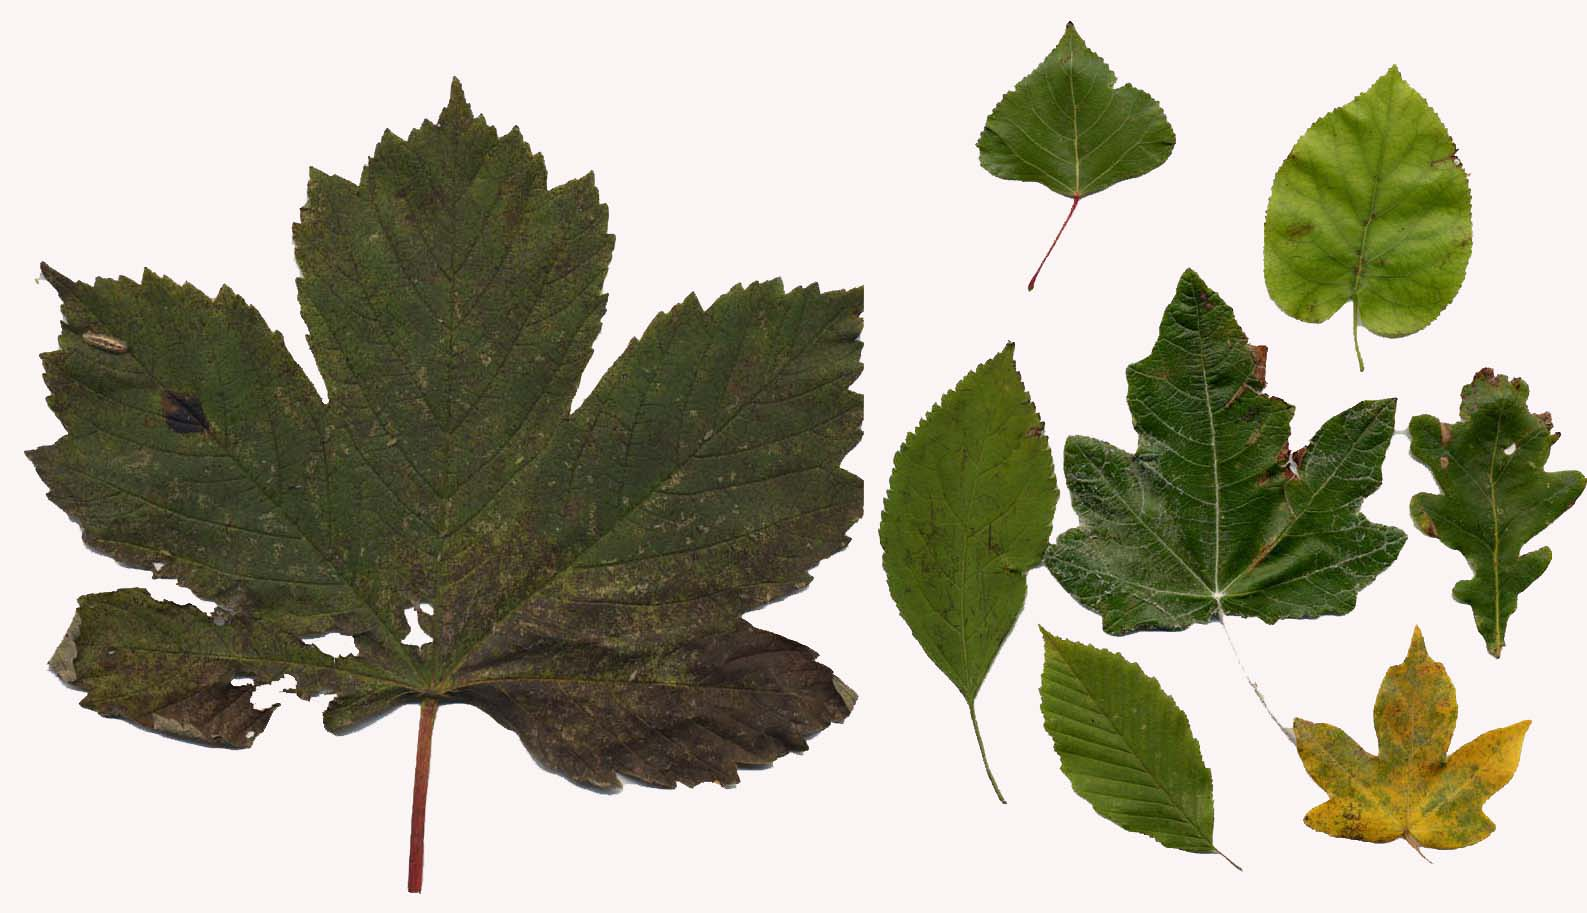 A small collection of leaves from the Coombes Road